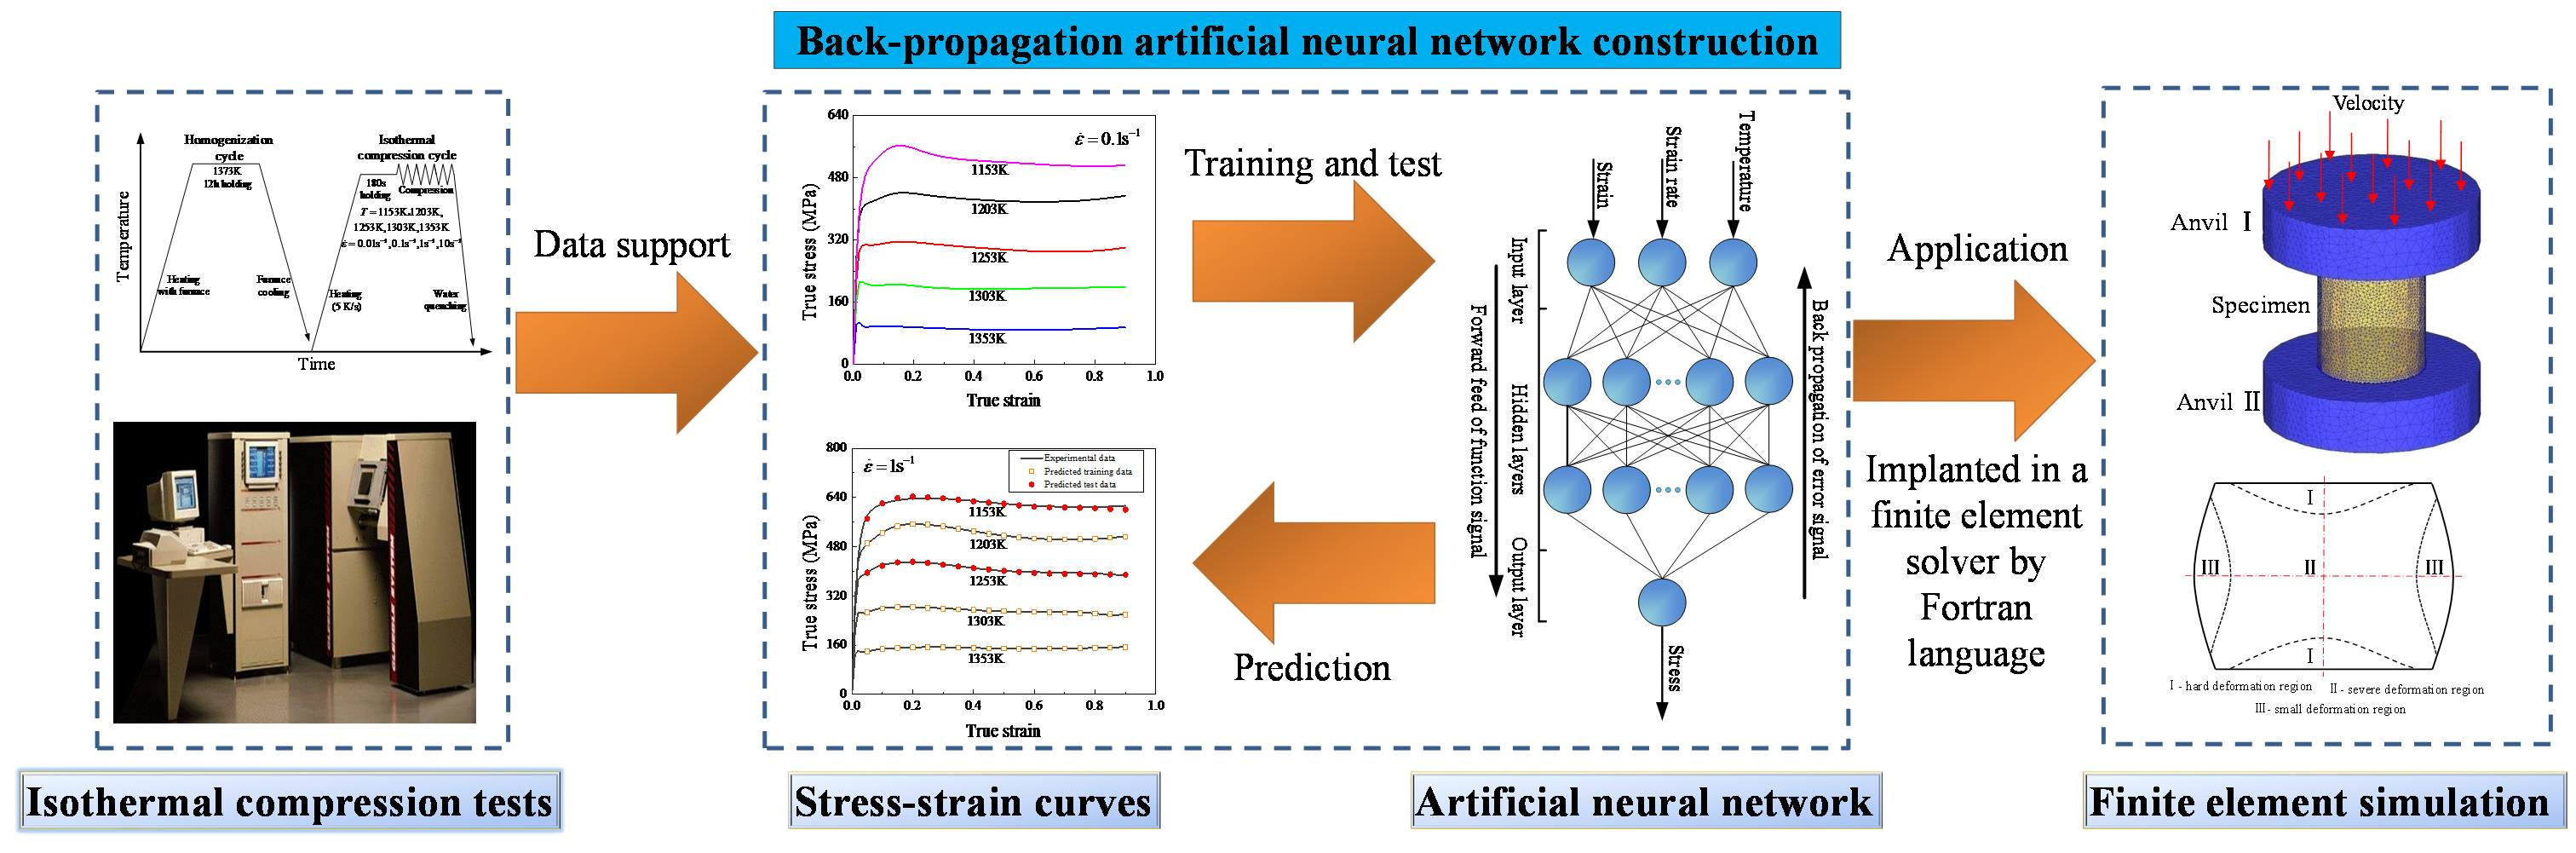 paper on artificial neural network